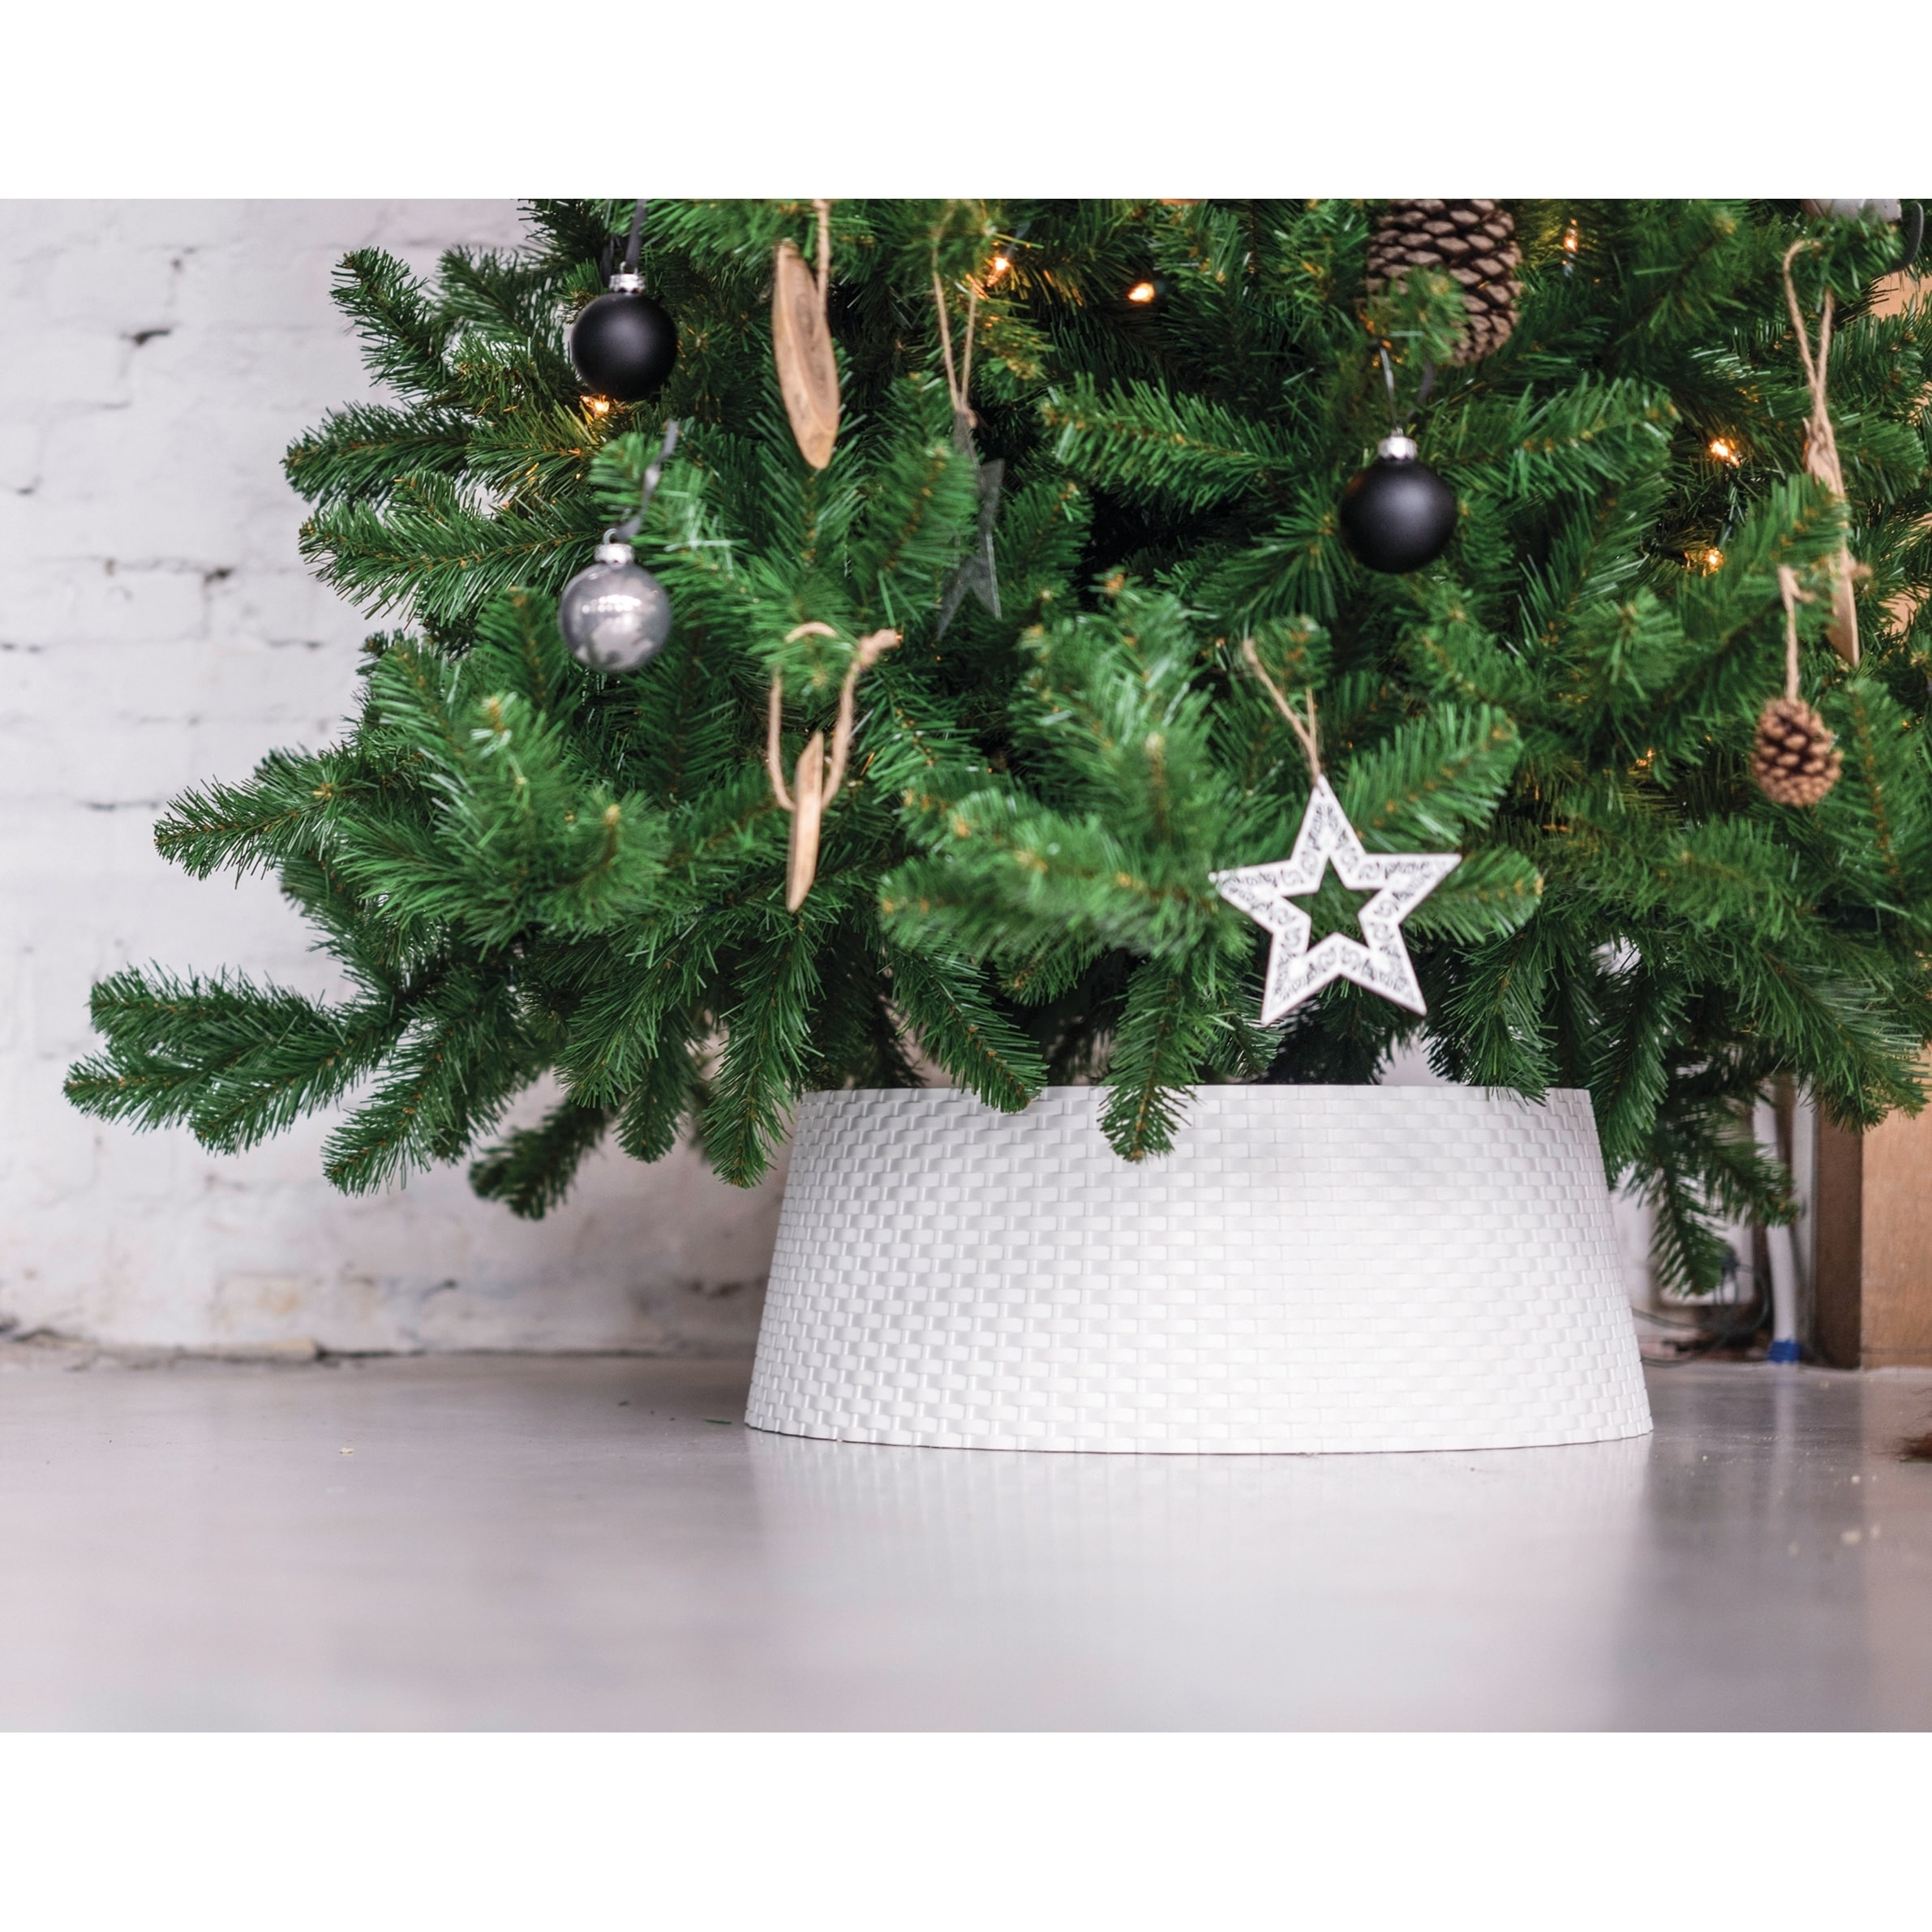 Holiday Decorative Durable Plastic Woven Wicker Christmas Tree Skirt Collar White Overstock 25692999